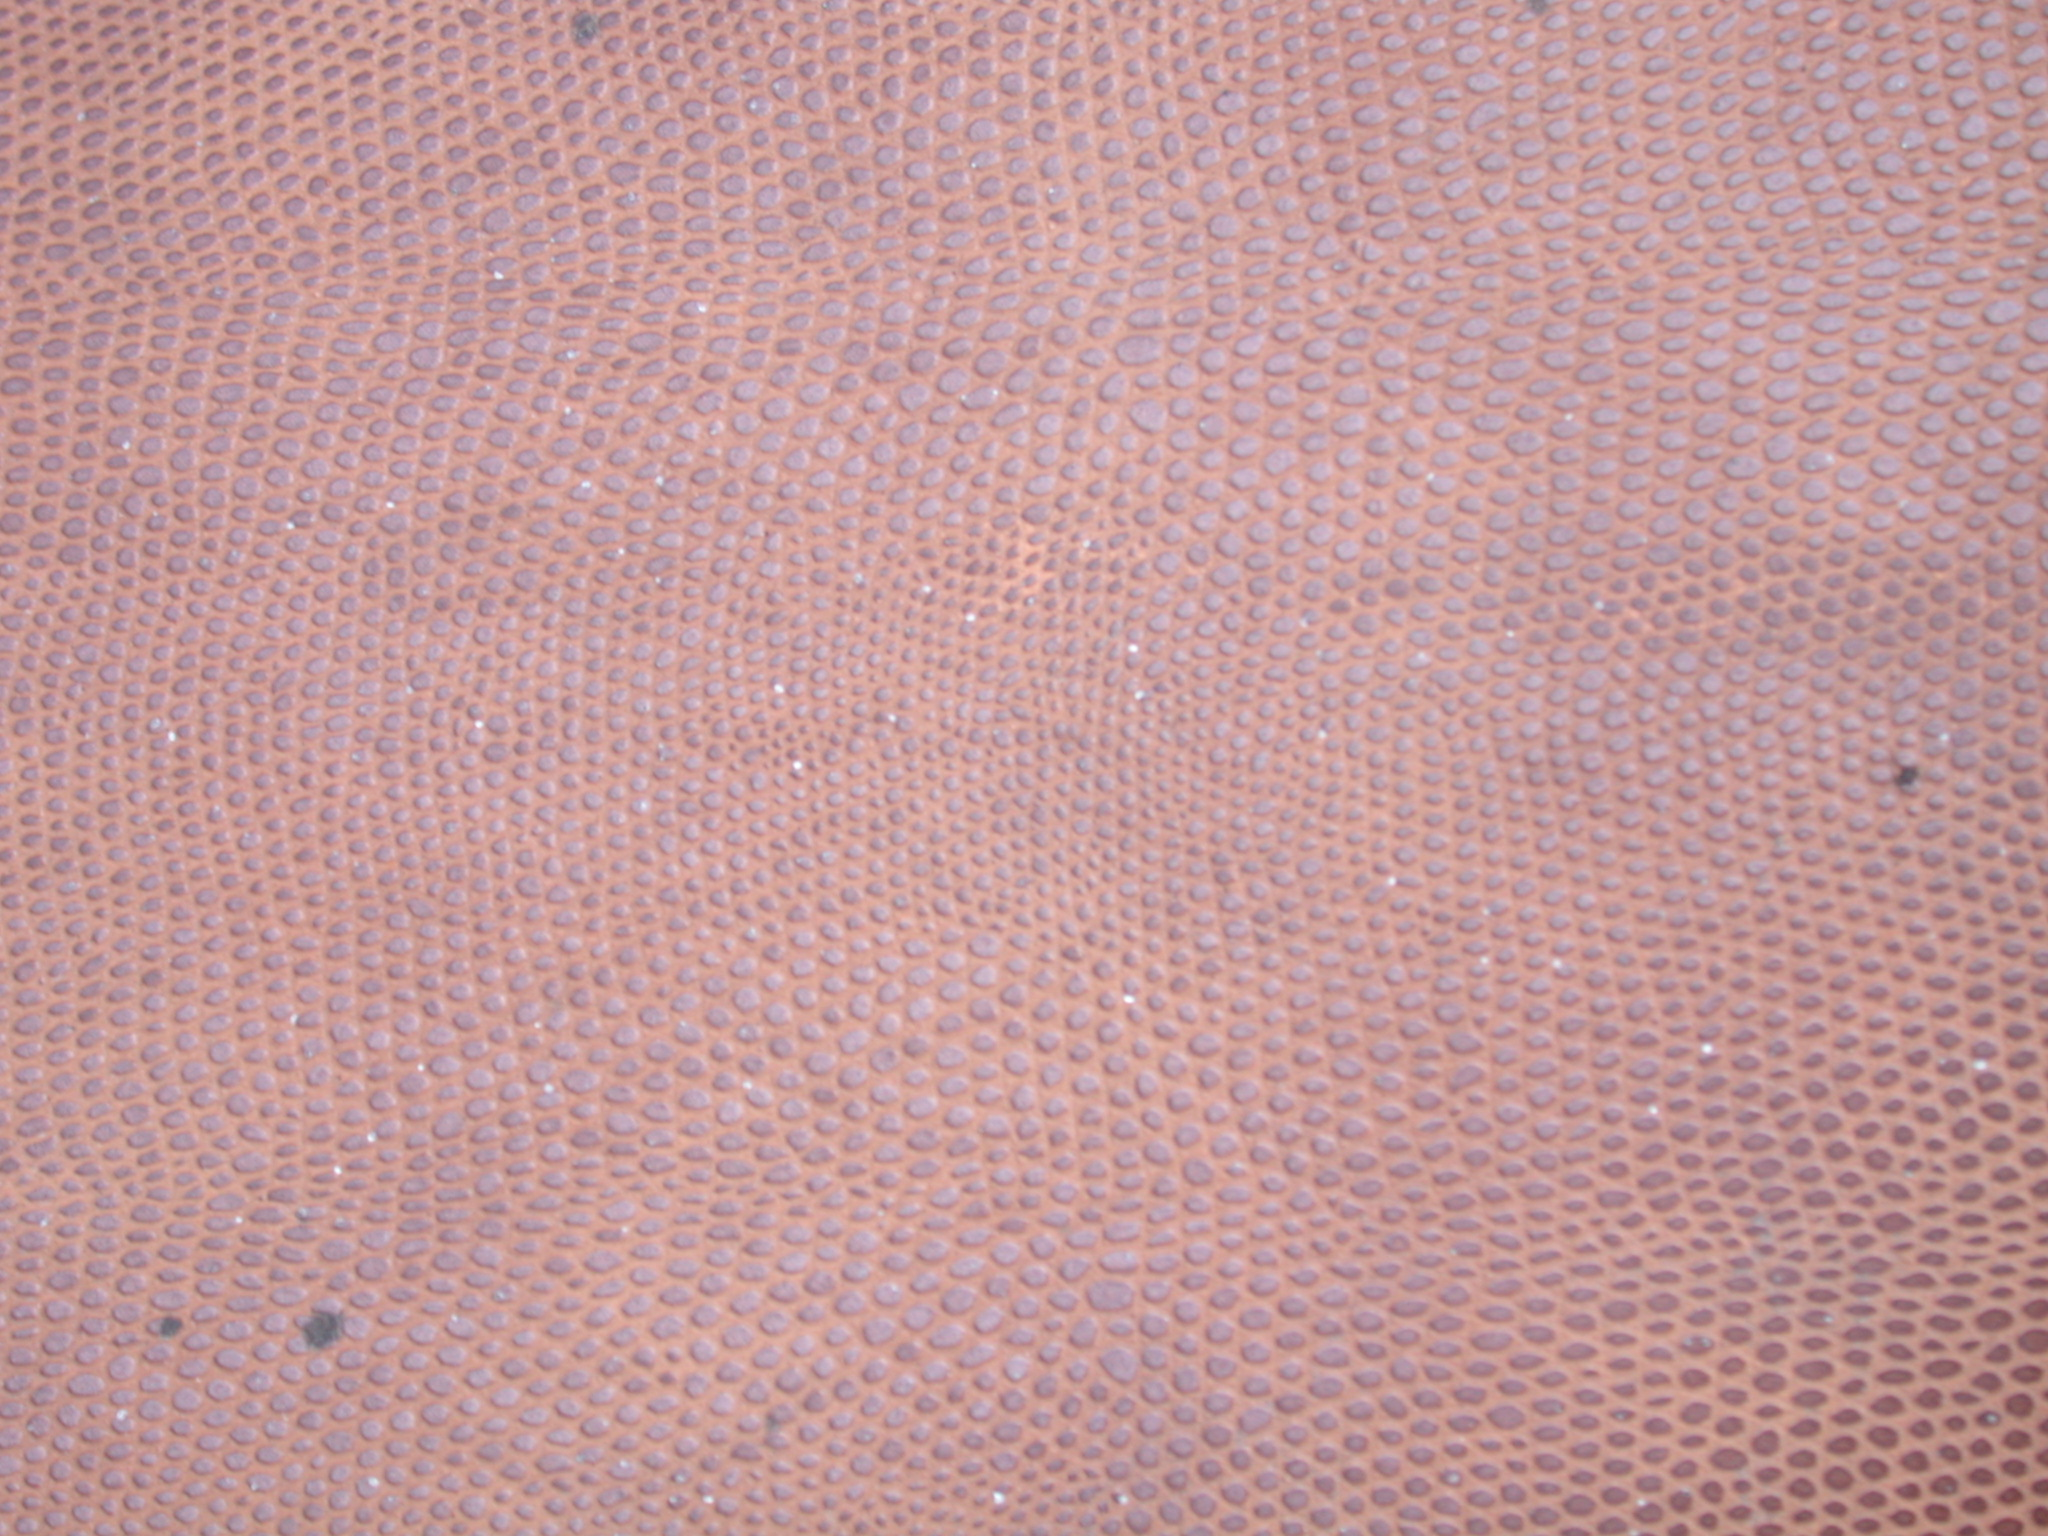 fabrics texture leather snakeleather red pattern